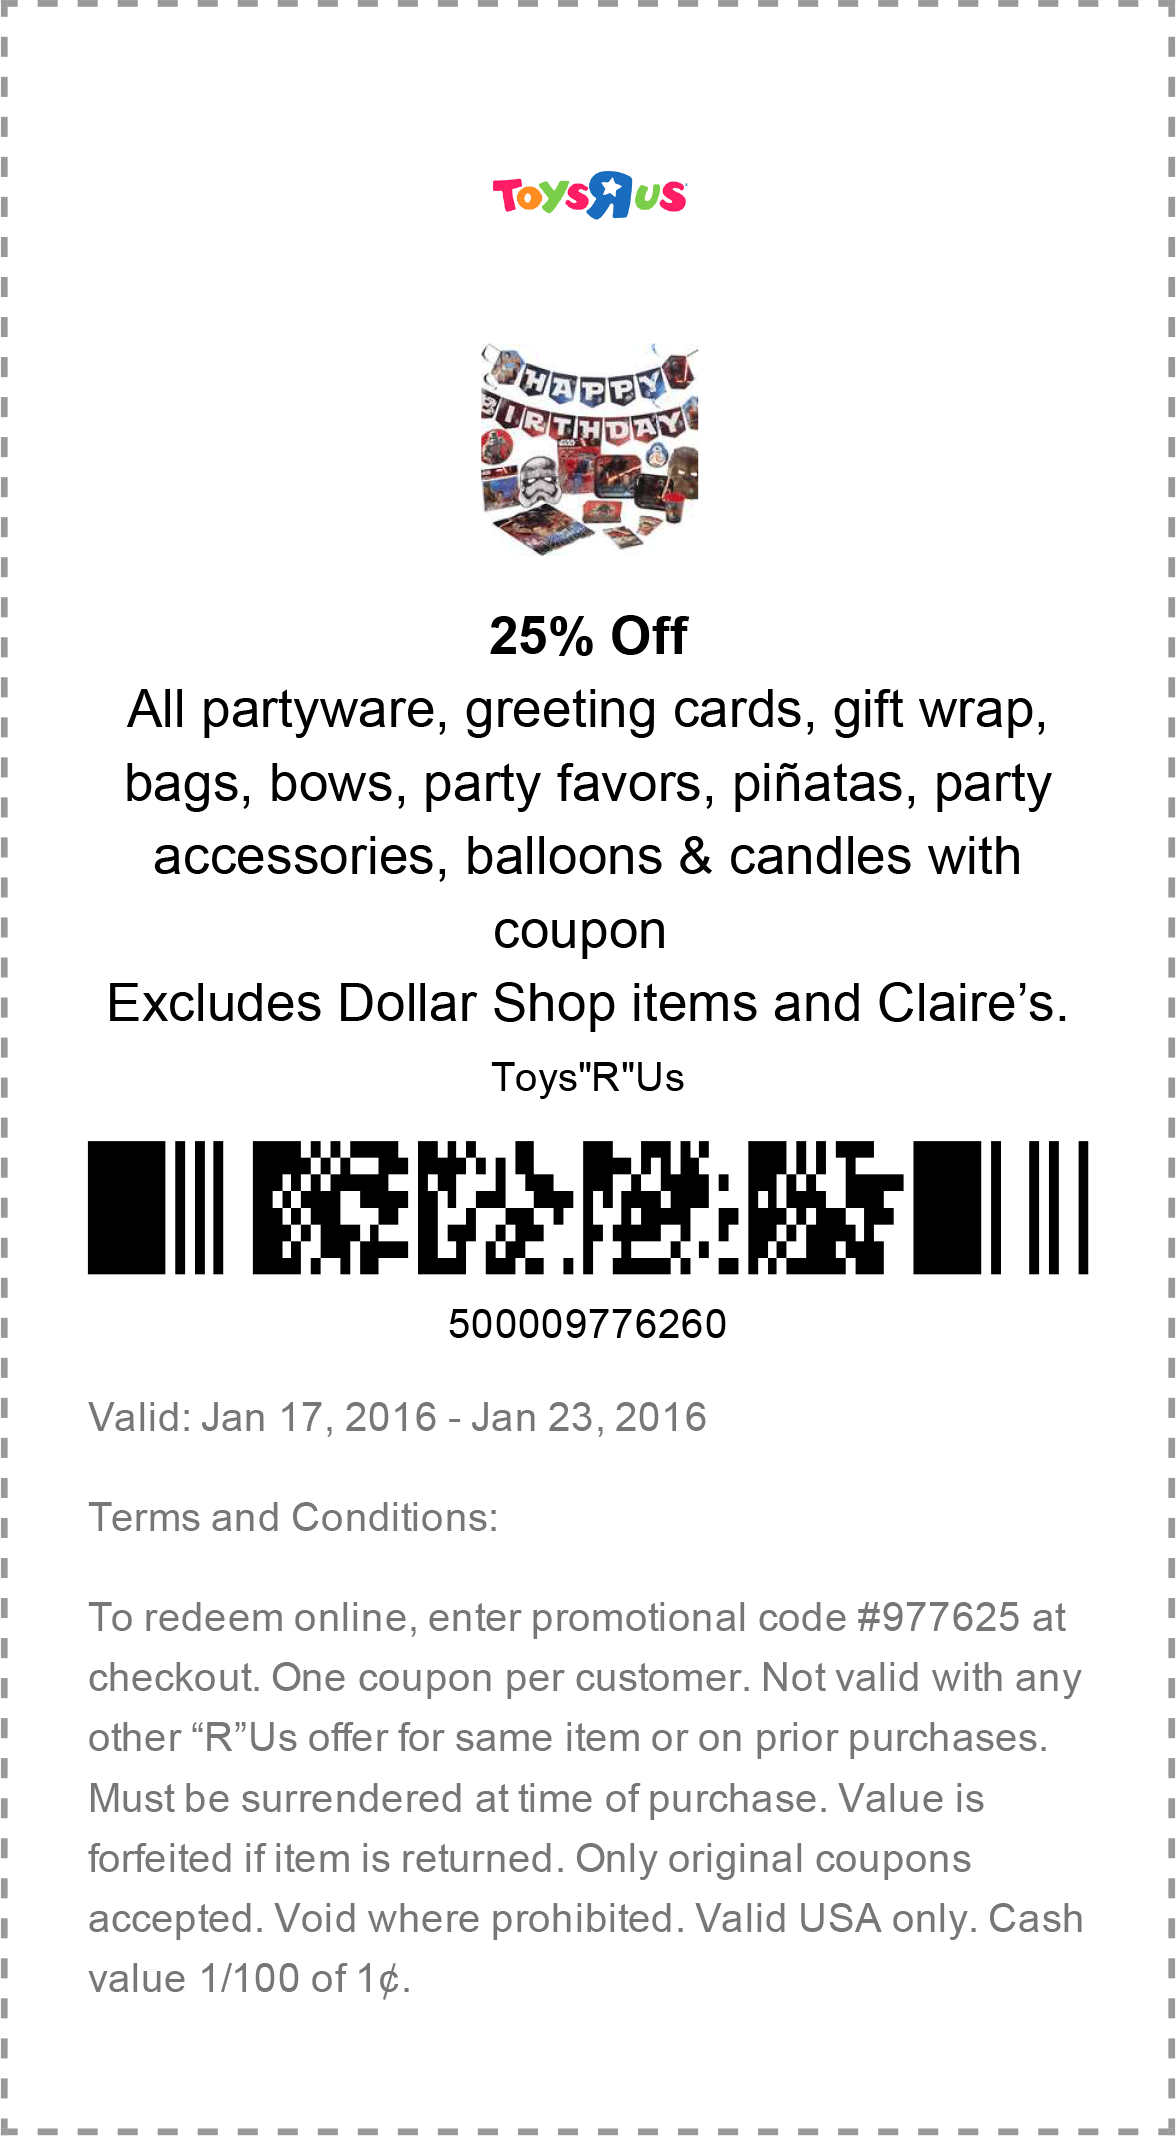 Toys R Us Coupon February 2017 25% off party supplies at Toys R Us